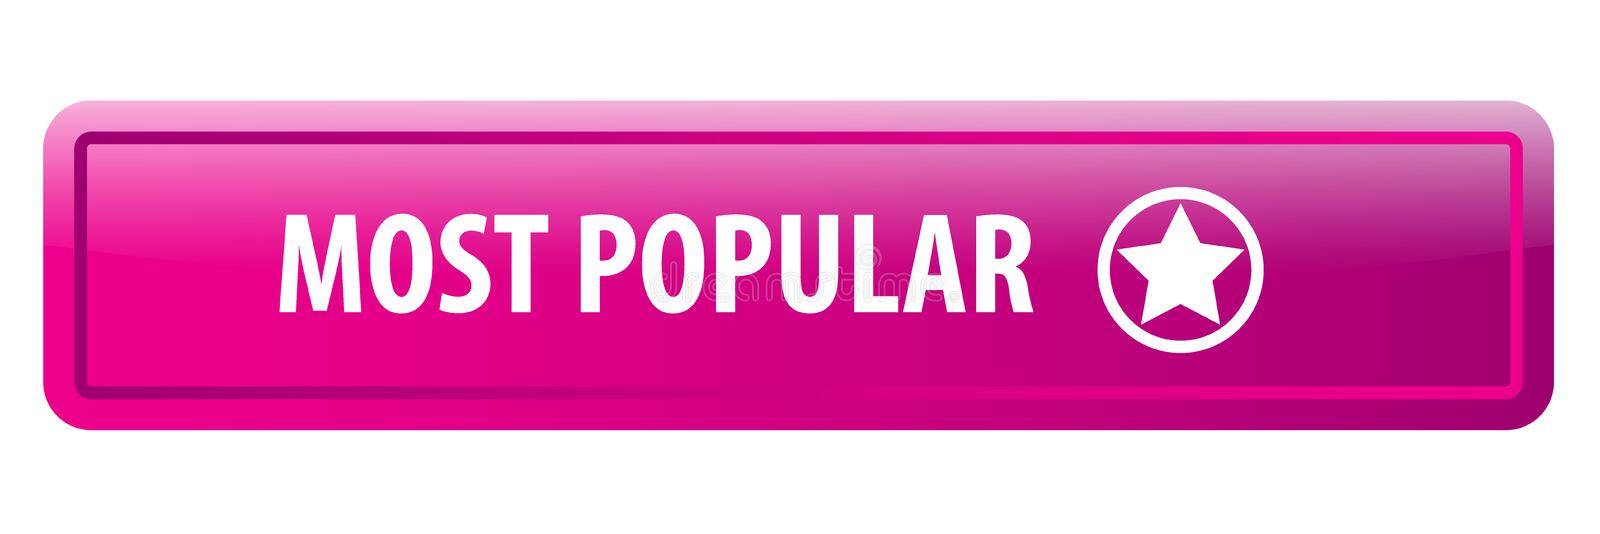 Most popular web button. Most popular colorful web icon button of vector illustration on isolated white background vector illustration